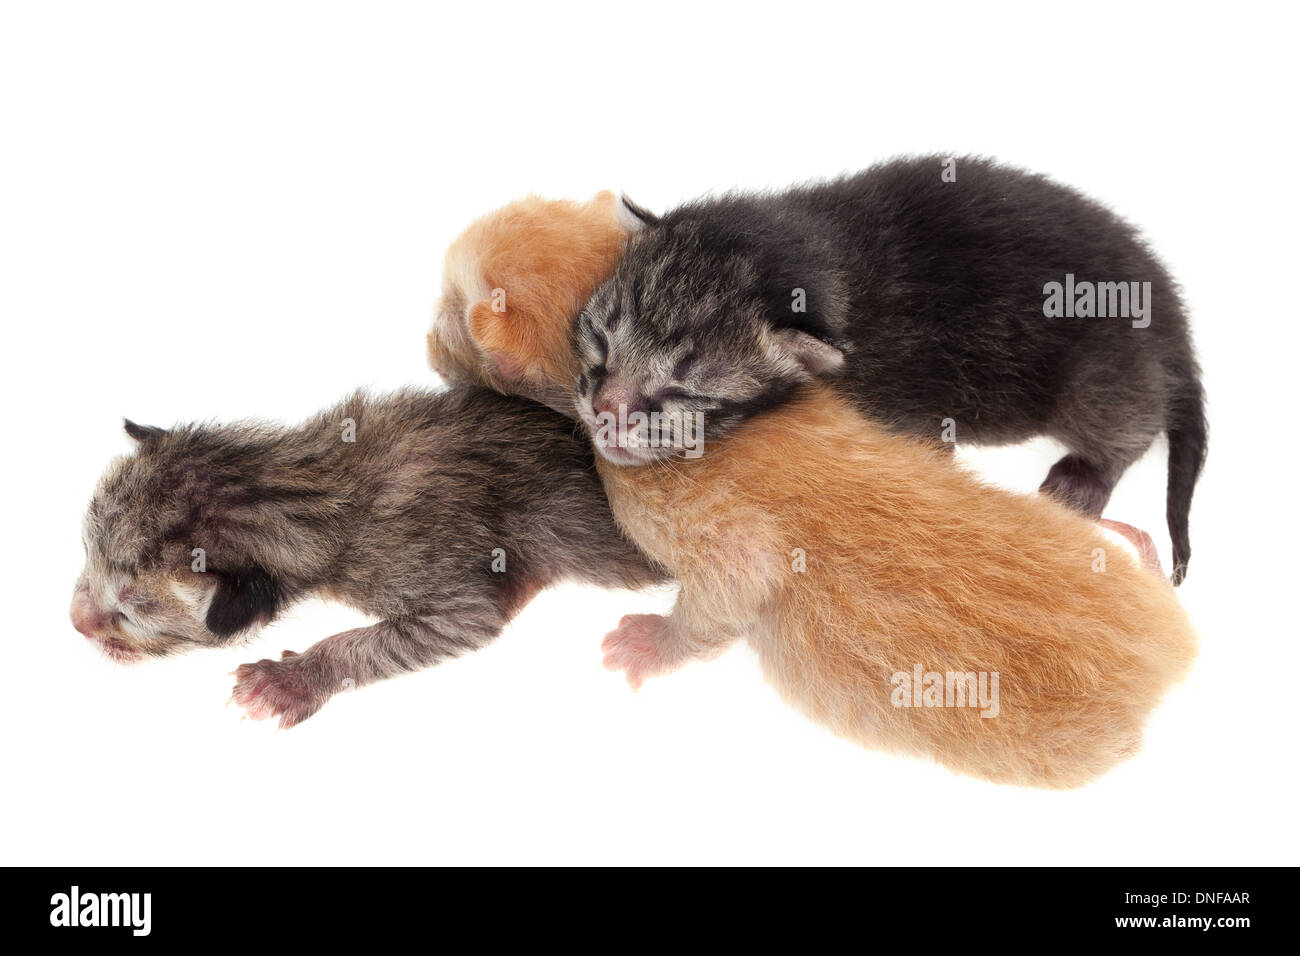 Isolated baby cats stock photos isolated baby cats stock images baby cats isolated on white background stock image thecheapjerseys Gallery